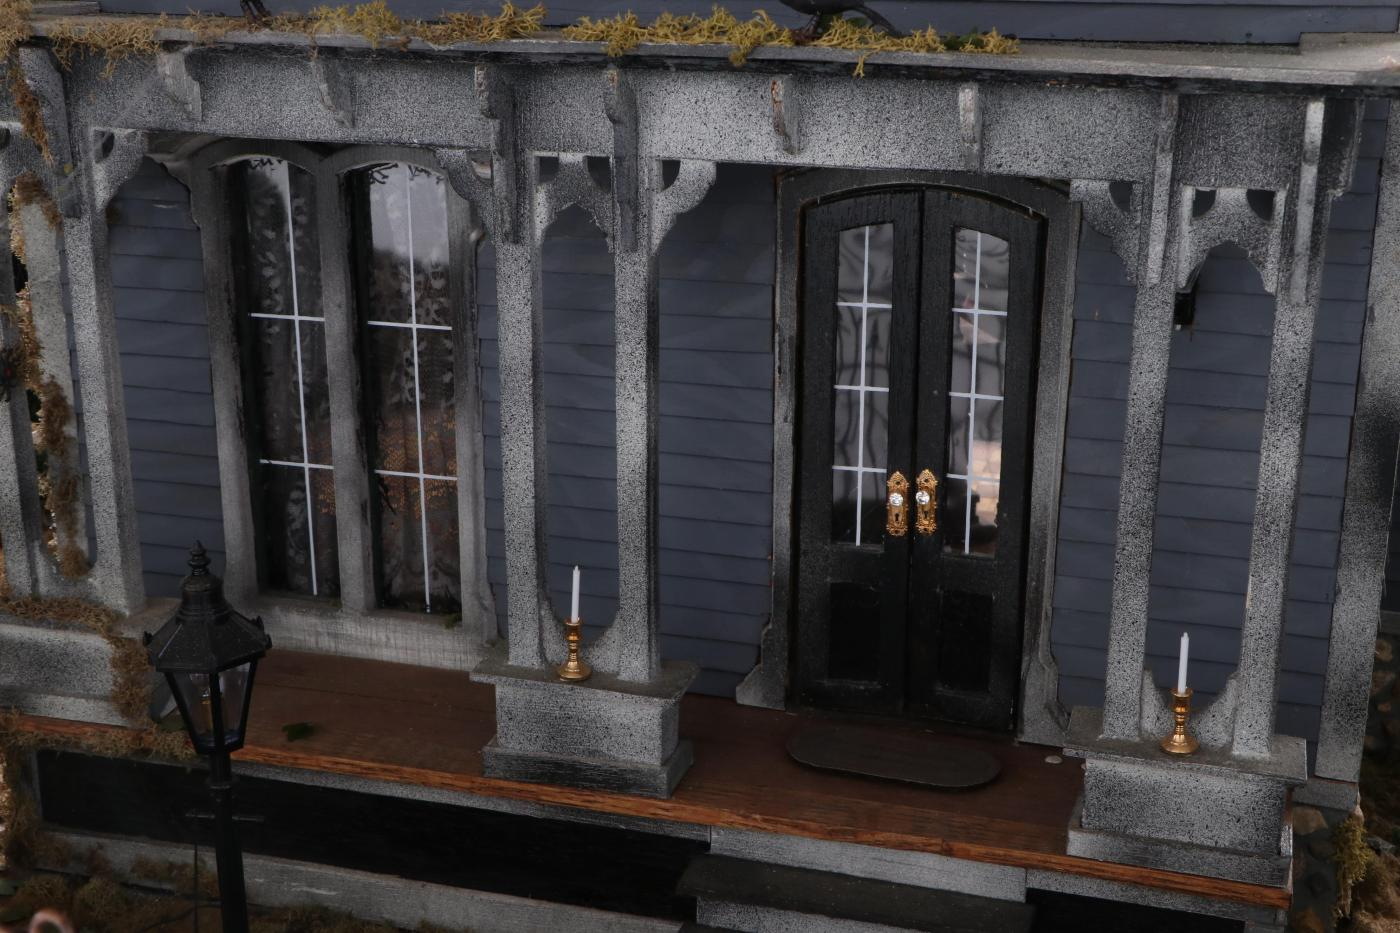 Custom Haunted House Dollhouse With Secret Rooms And